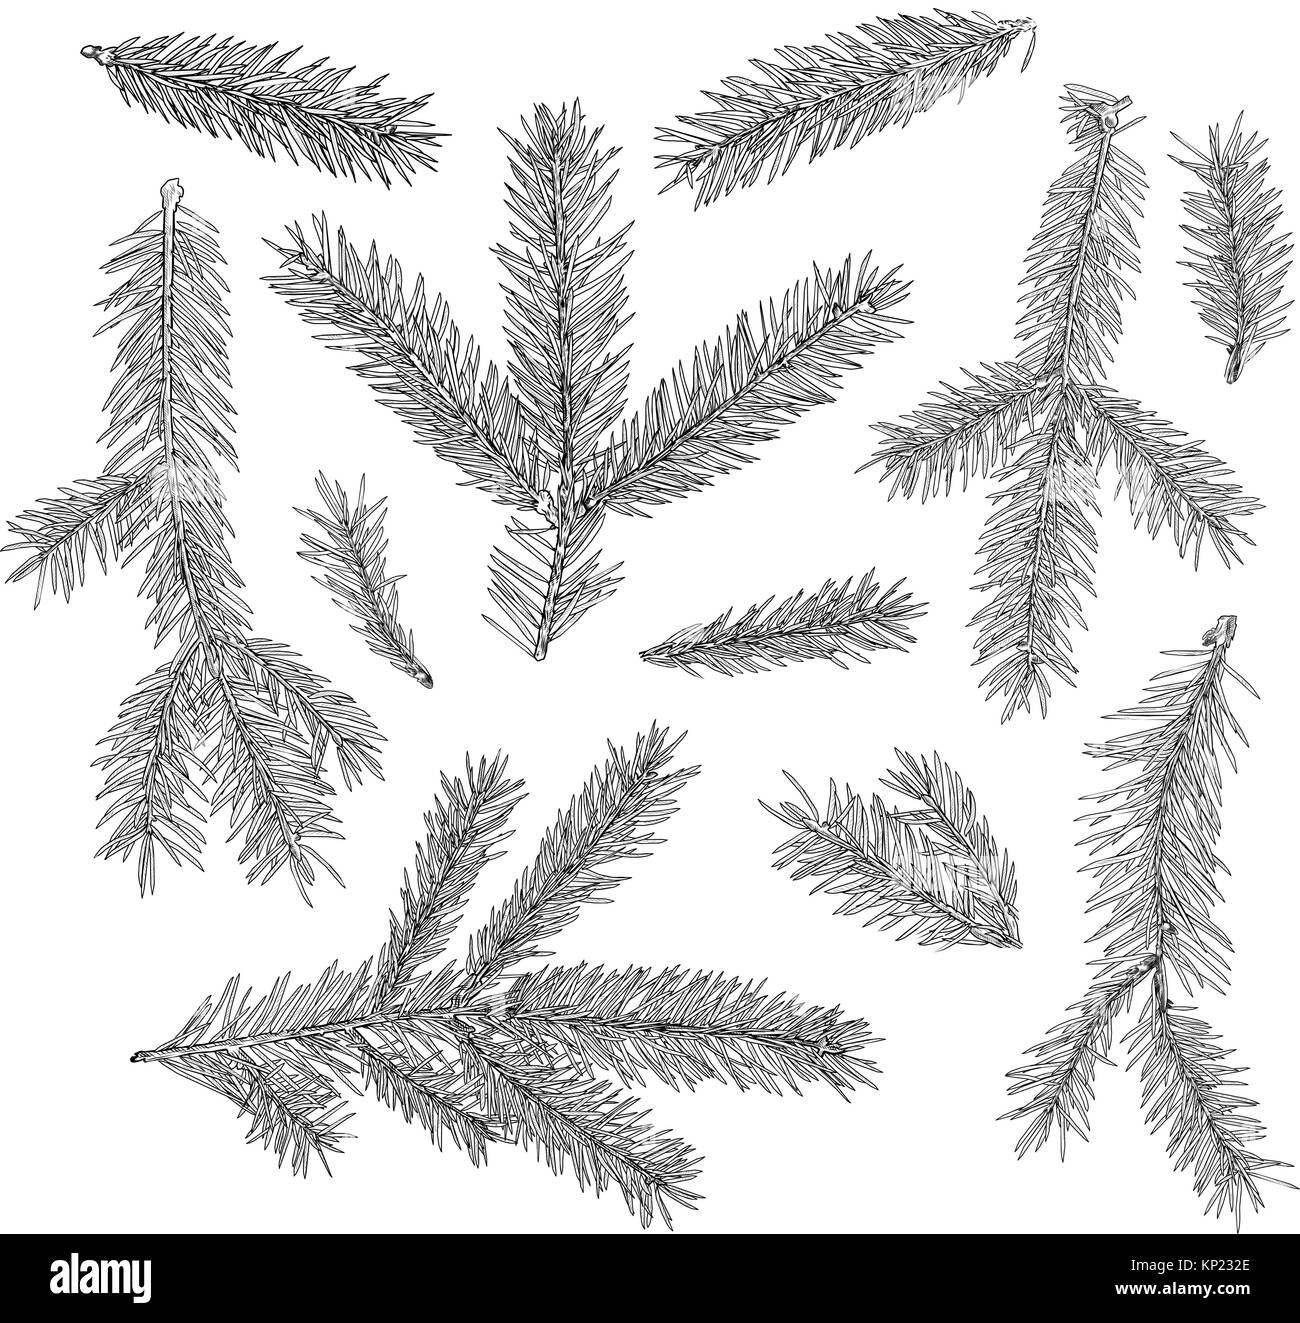 Set Of Fir Tree Branches Isolated On White Background